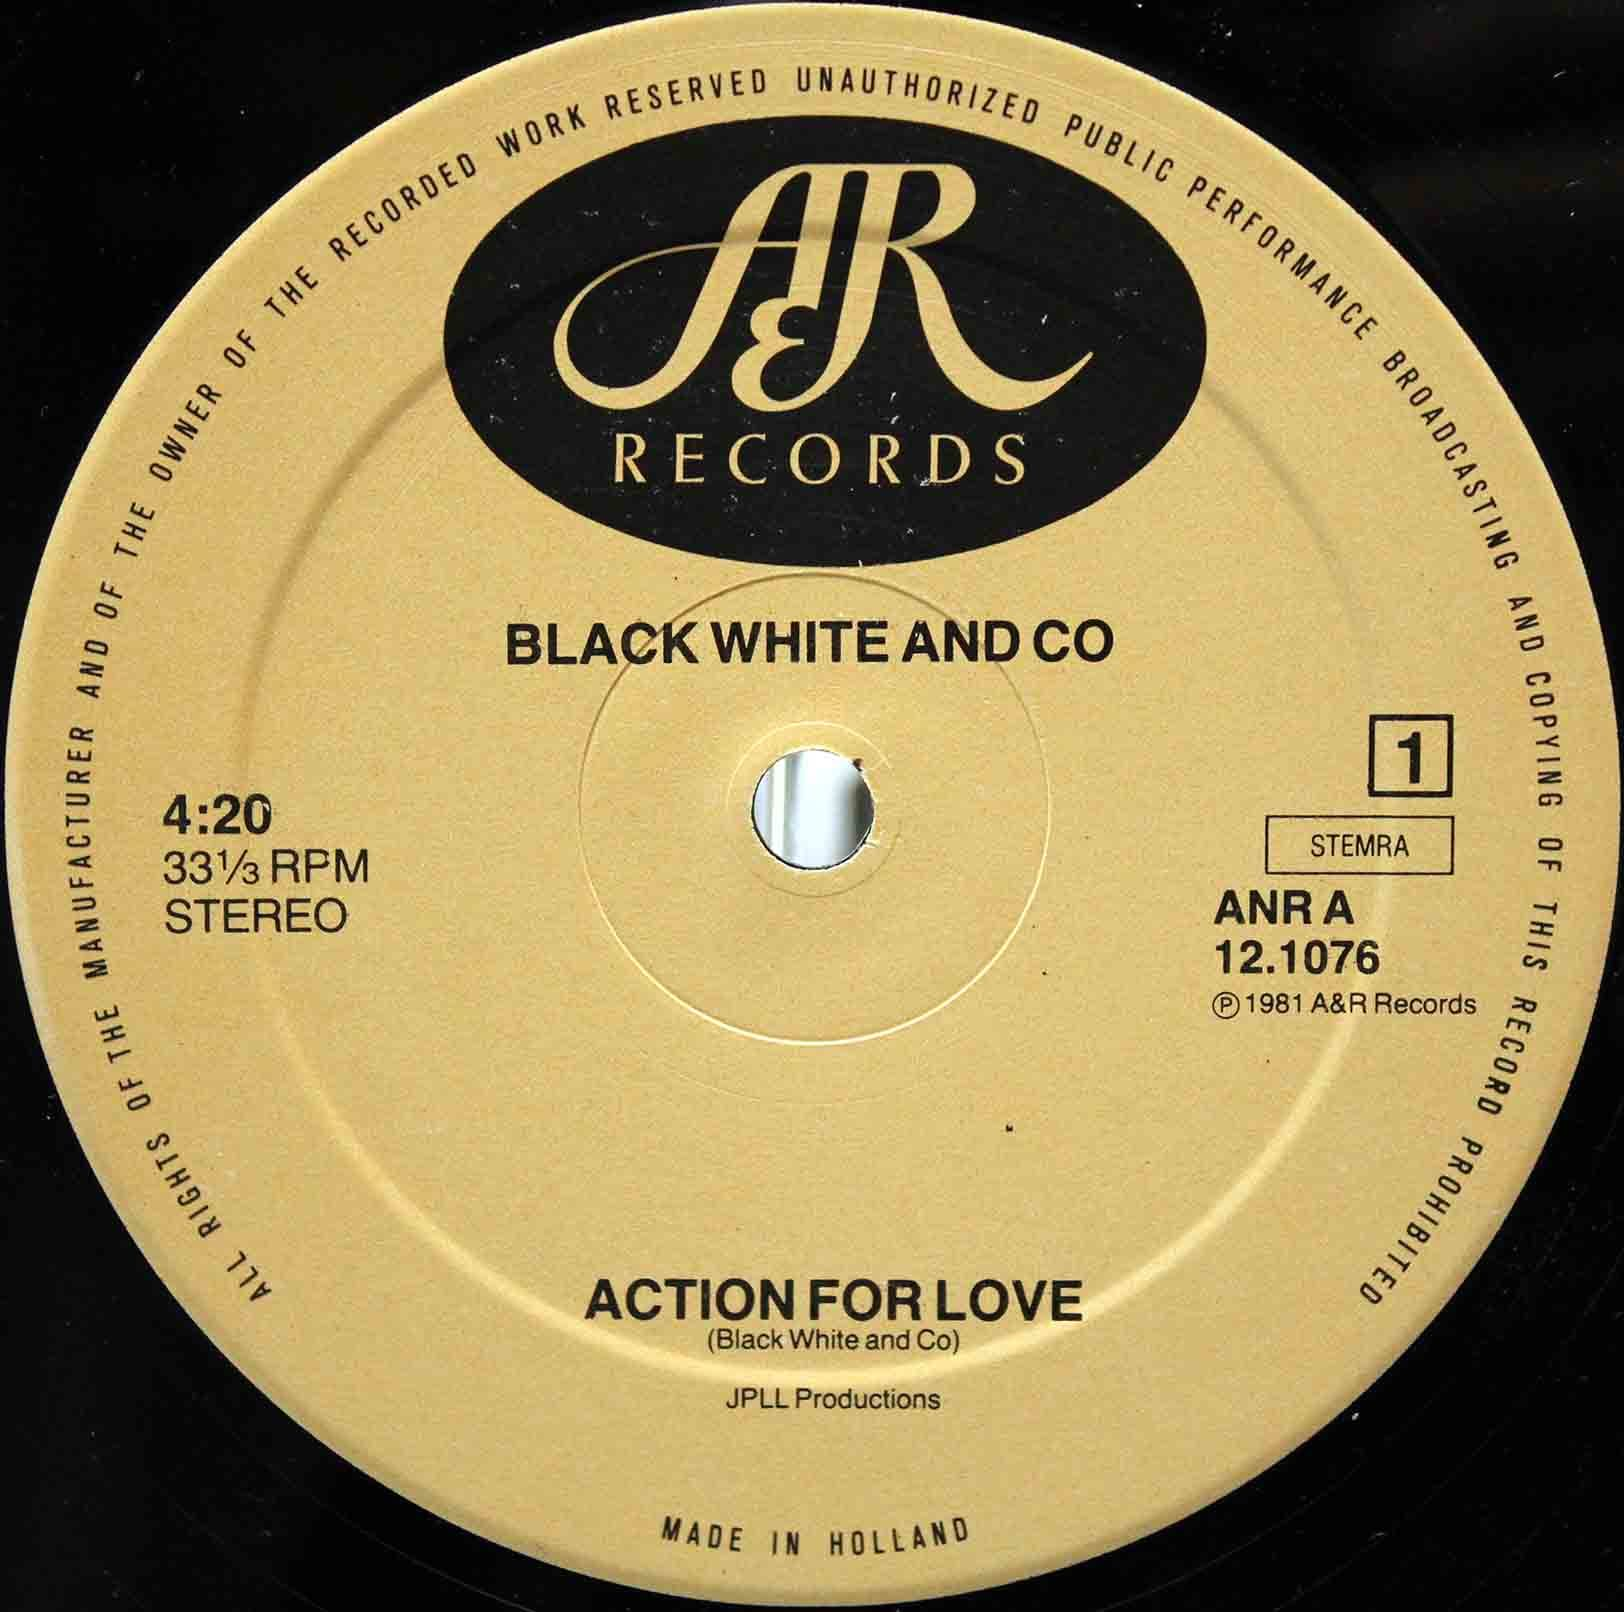 Black White And Co – Action For Love 03